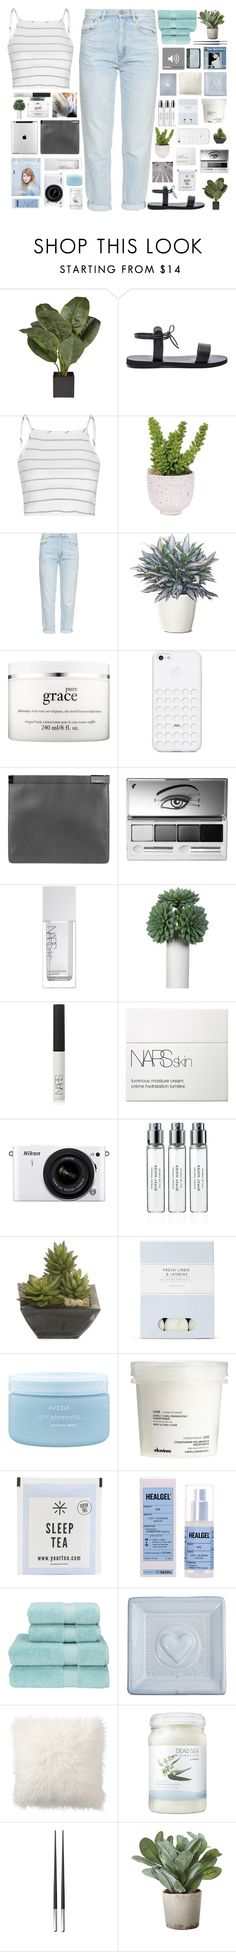 """""""Untitled #2216"""" by tacoxcat ❤ liked on Polyvore featuring Isapera, Glamorous, Lux-Art Silks, M.i.h Jeans, philosophy, Maison Margiela, Clinique, NARS Cosmetics, Nikon and Byredo"""